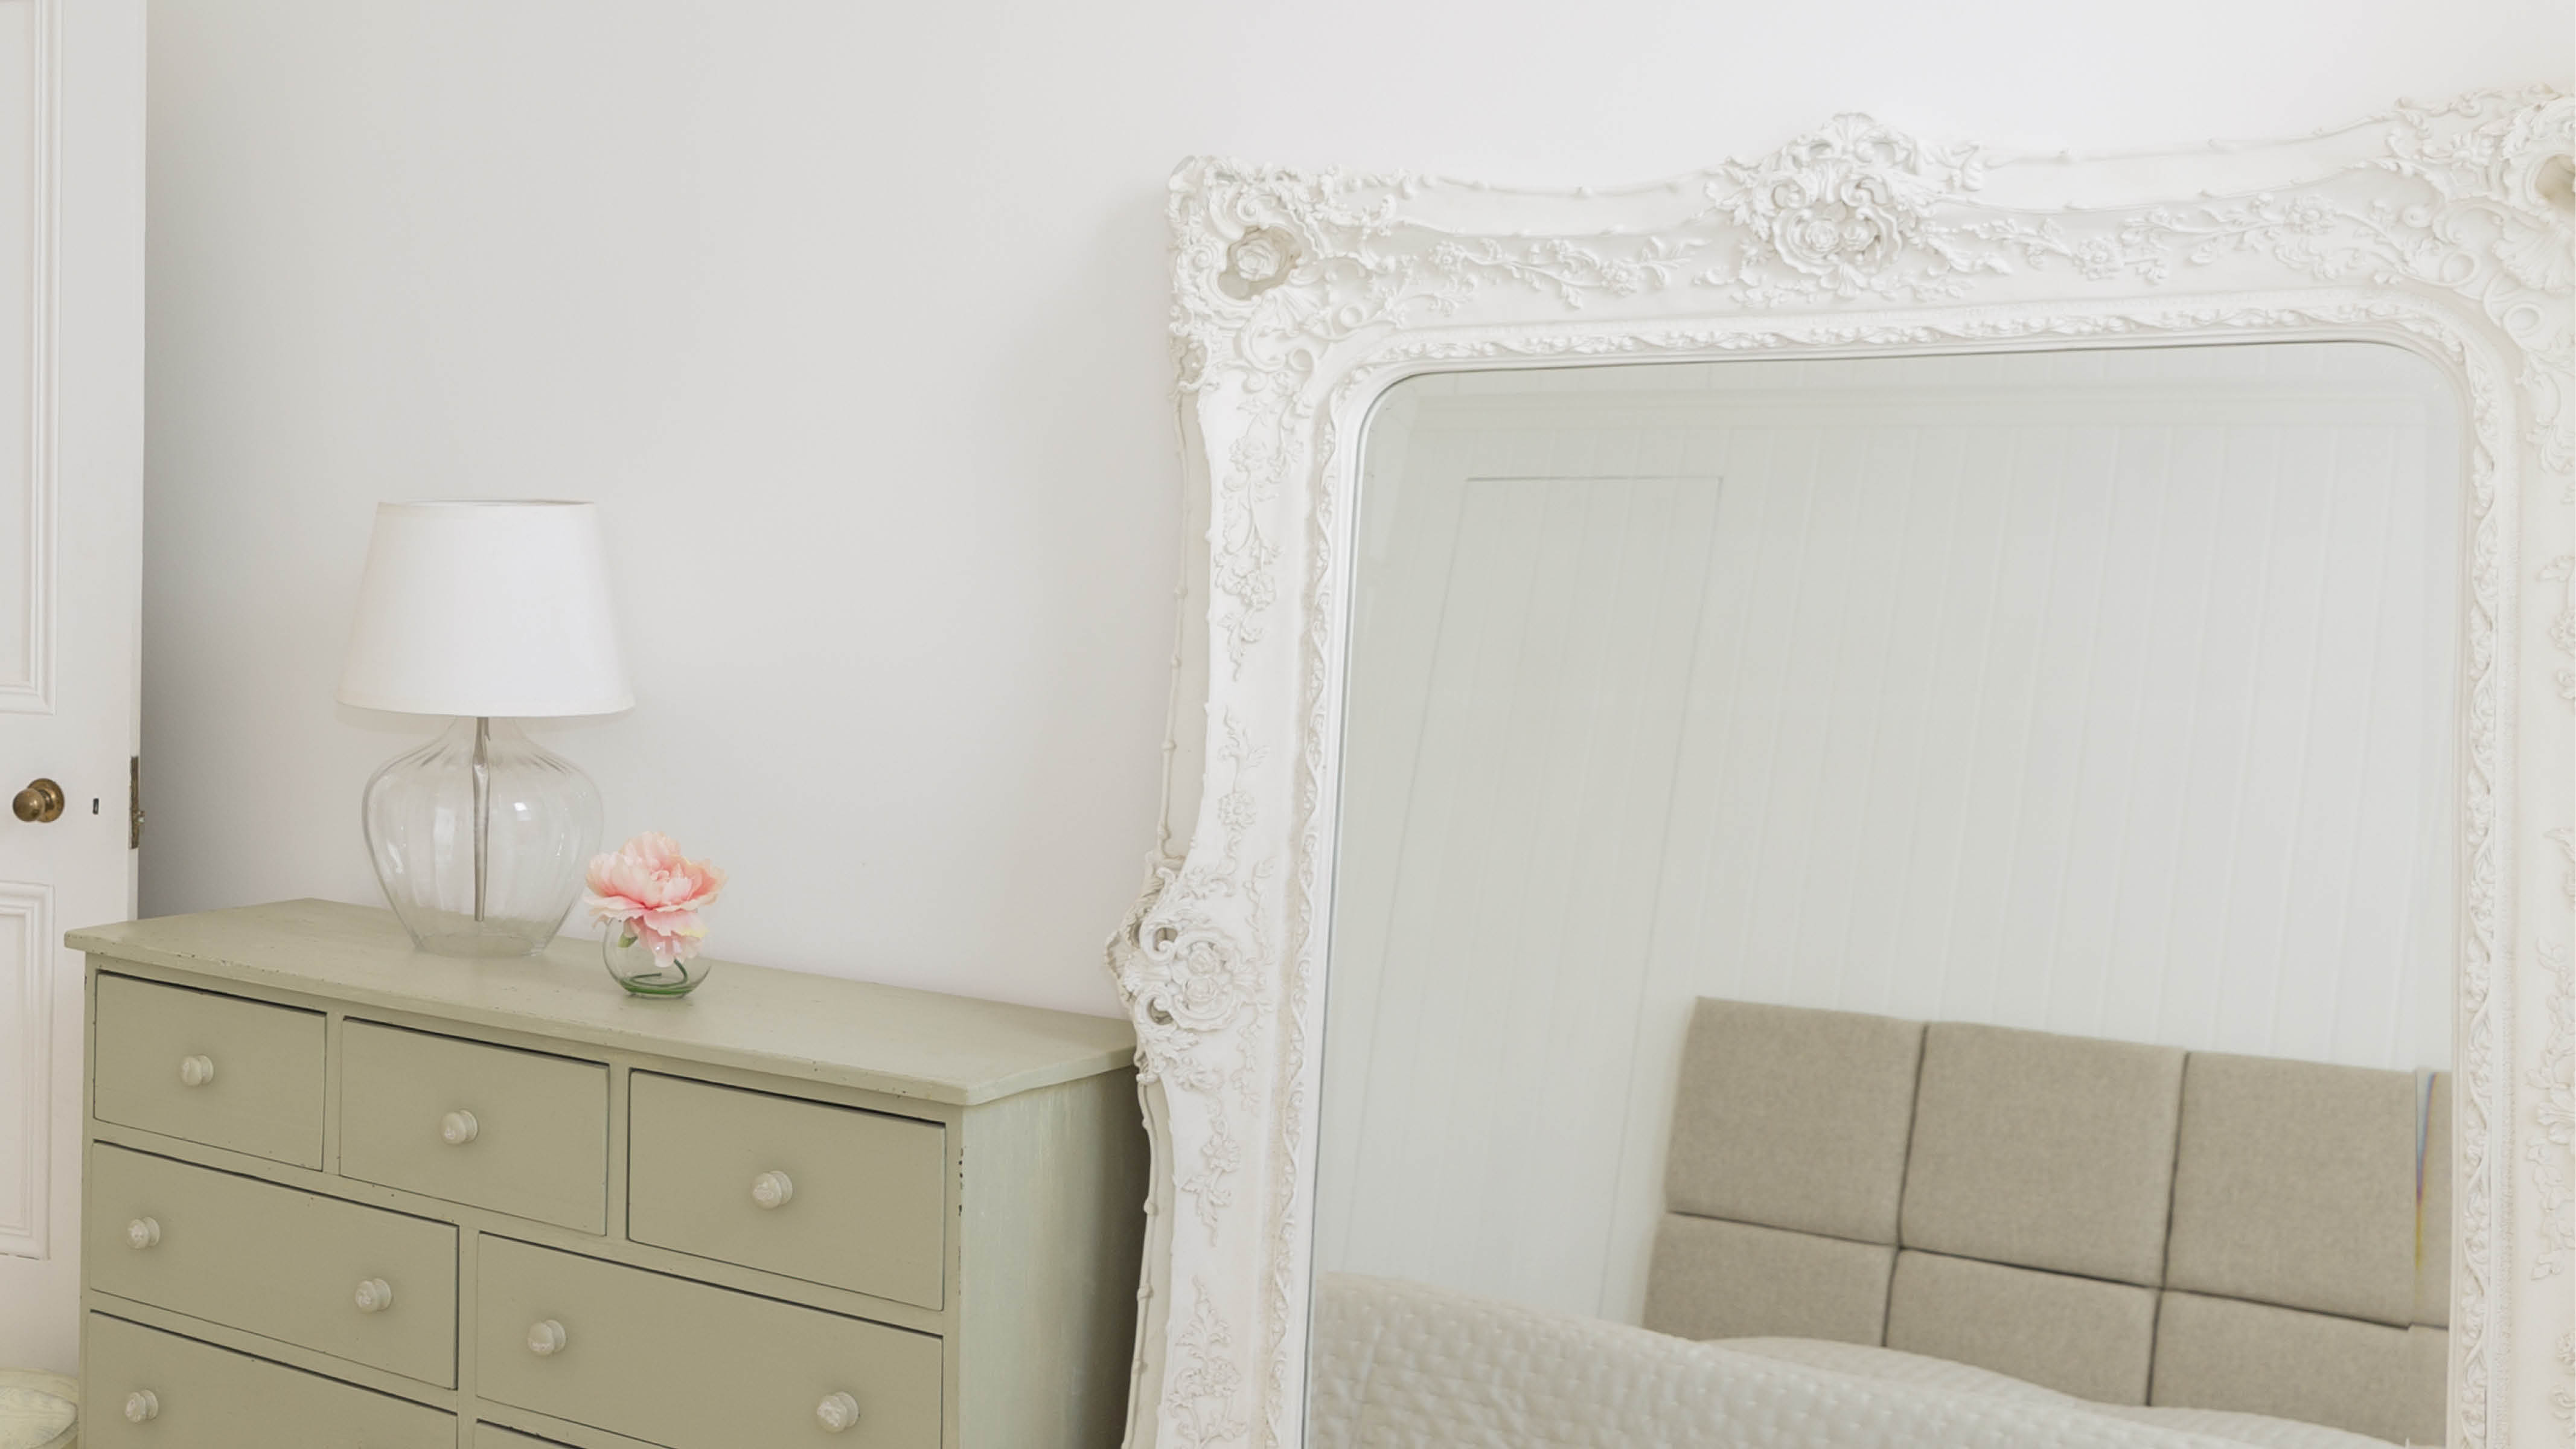 By leaning a large mirror against a wall you'll give the impression that the room is expanding and opening up at head height.